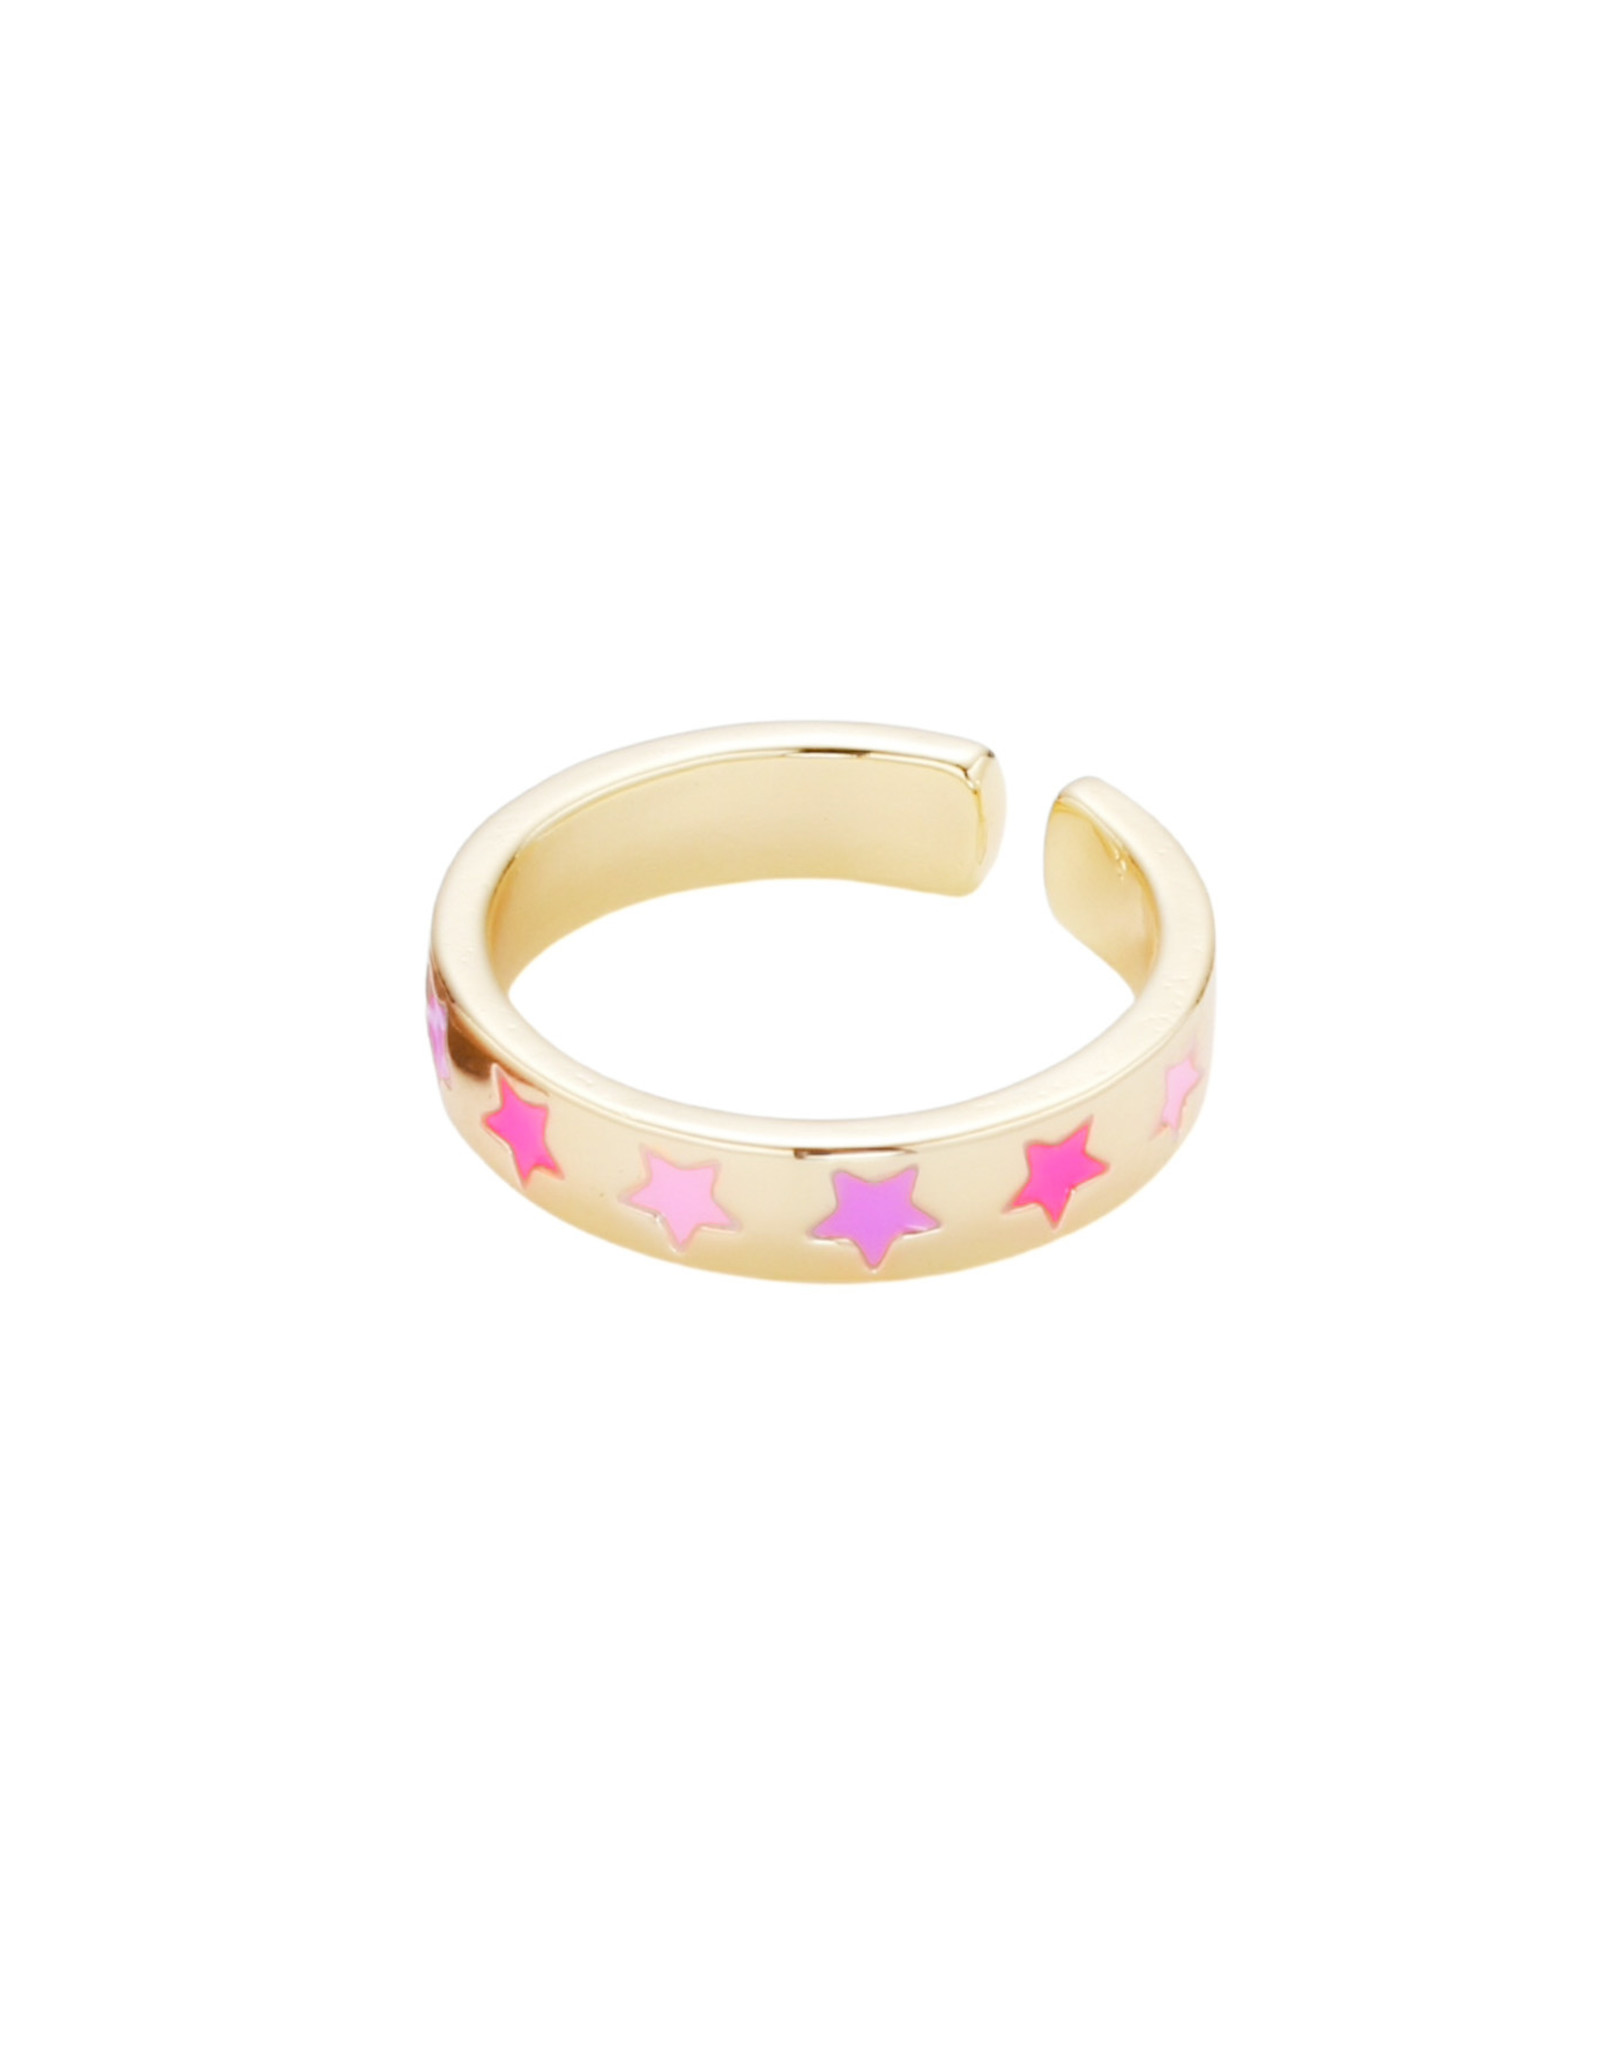 Wrapped by Sav star girl ring